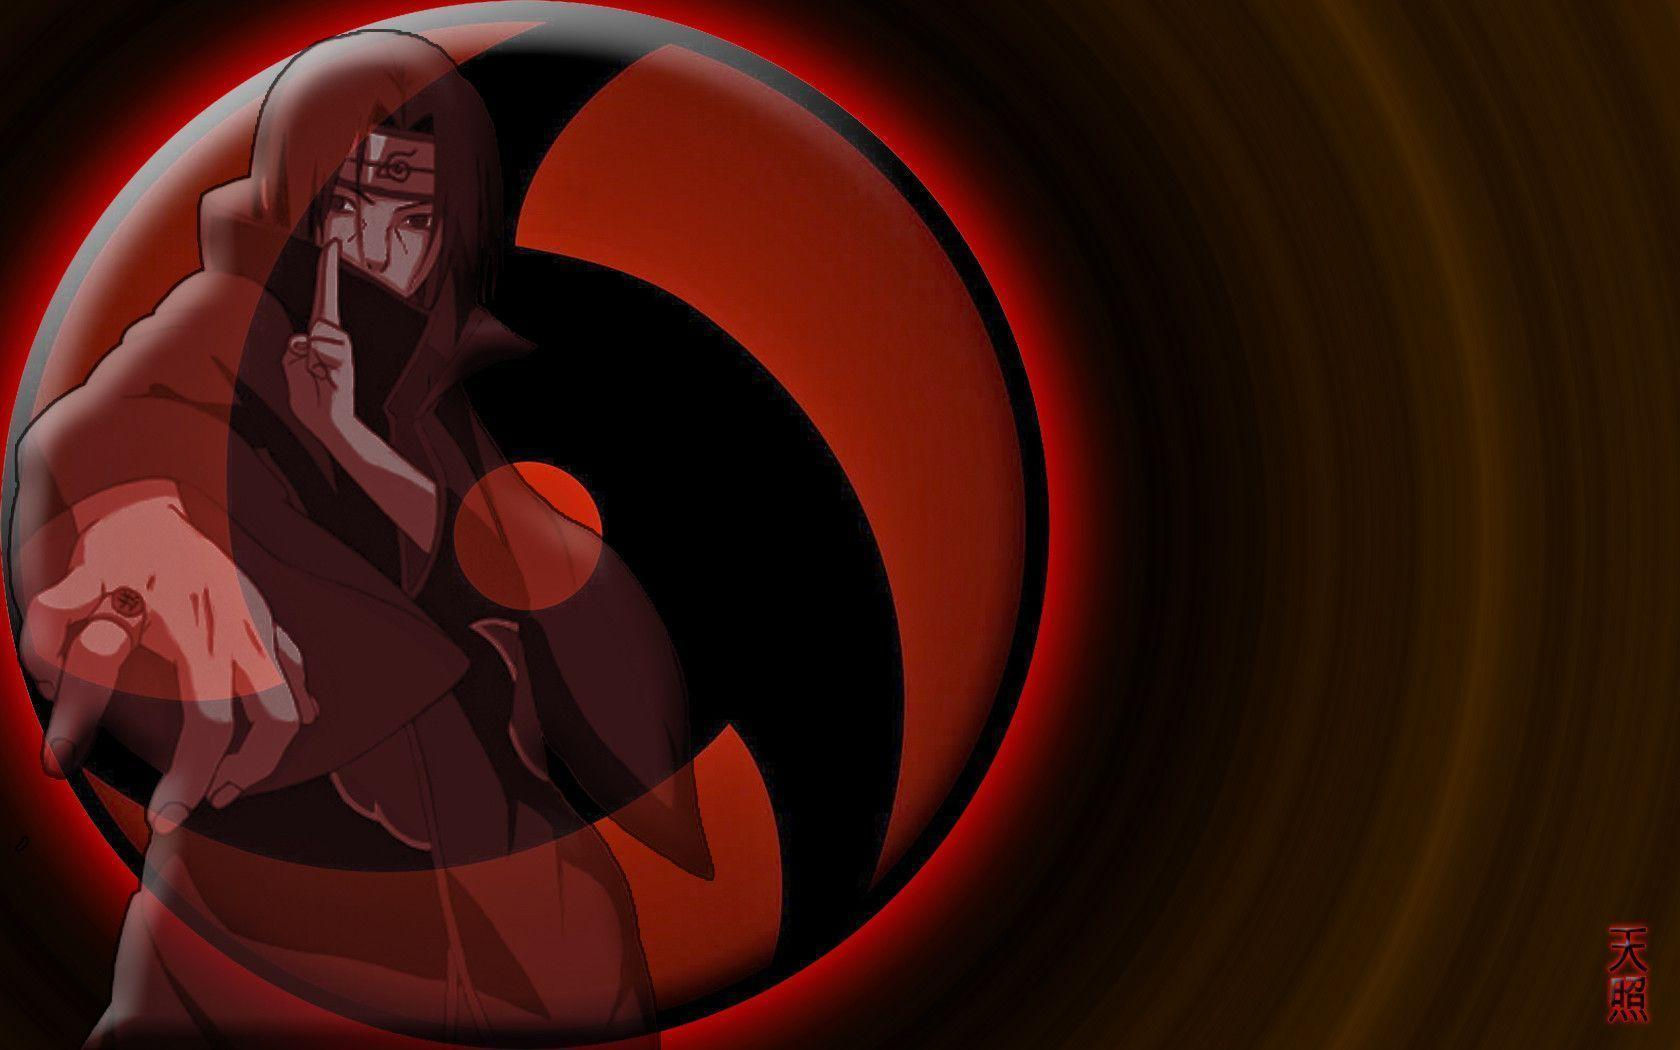 Itachi Shippuden Wallpapers - Wallpaper Cave